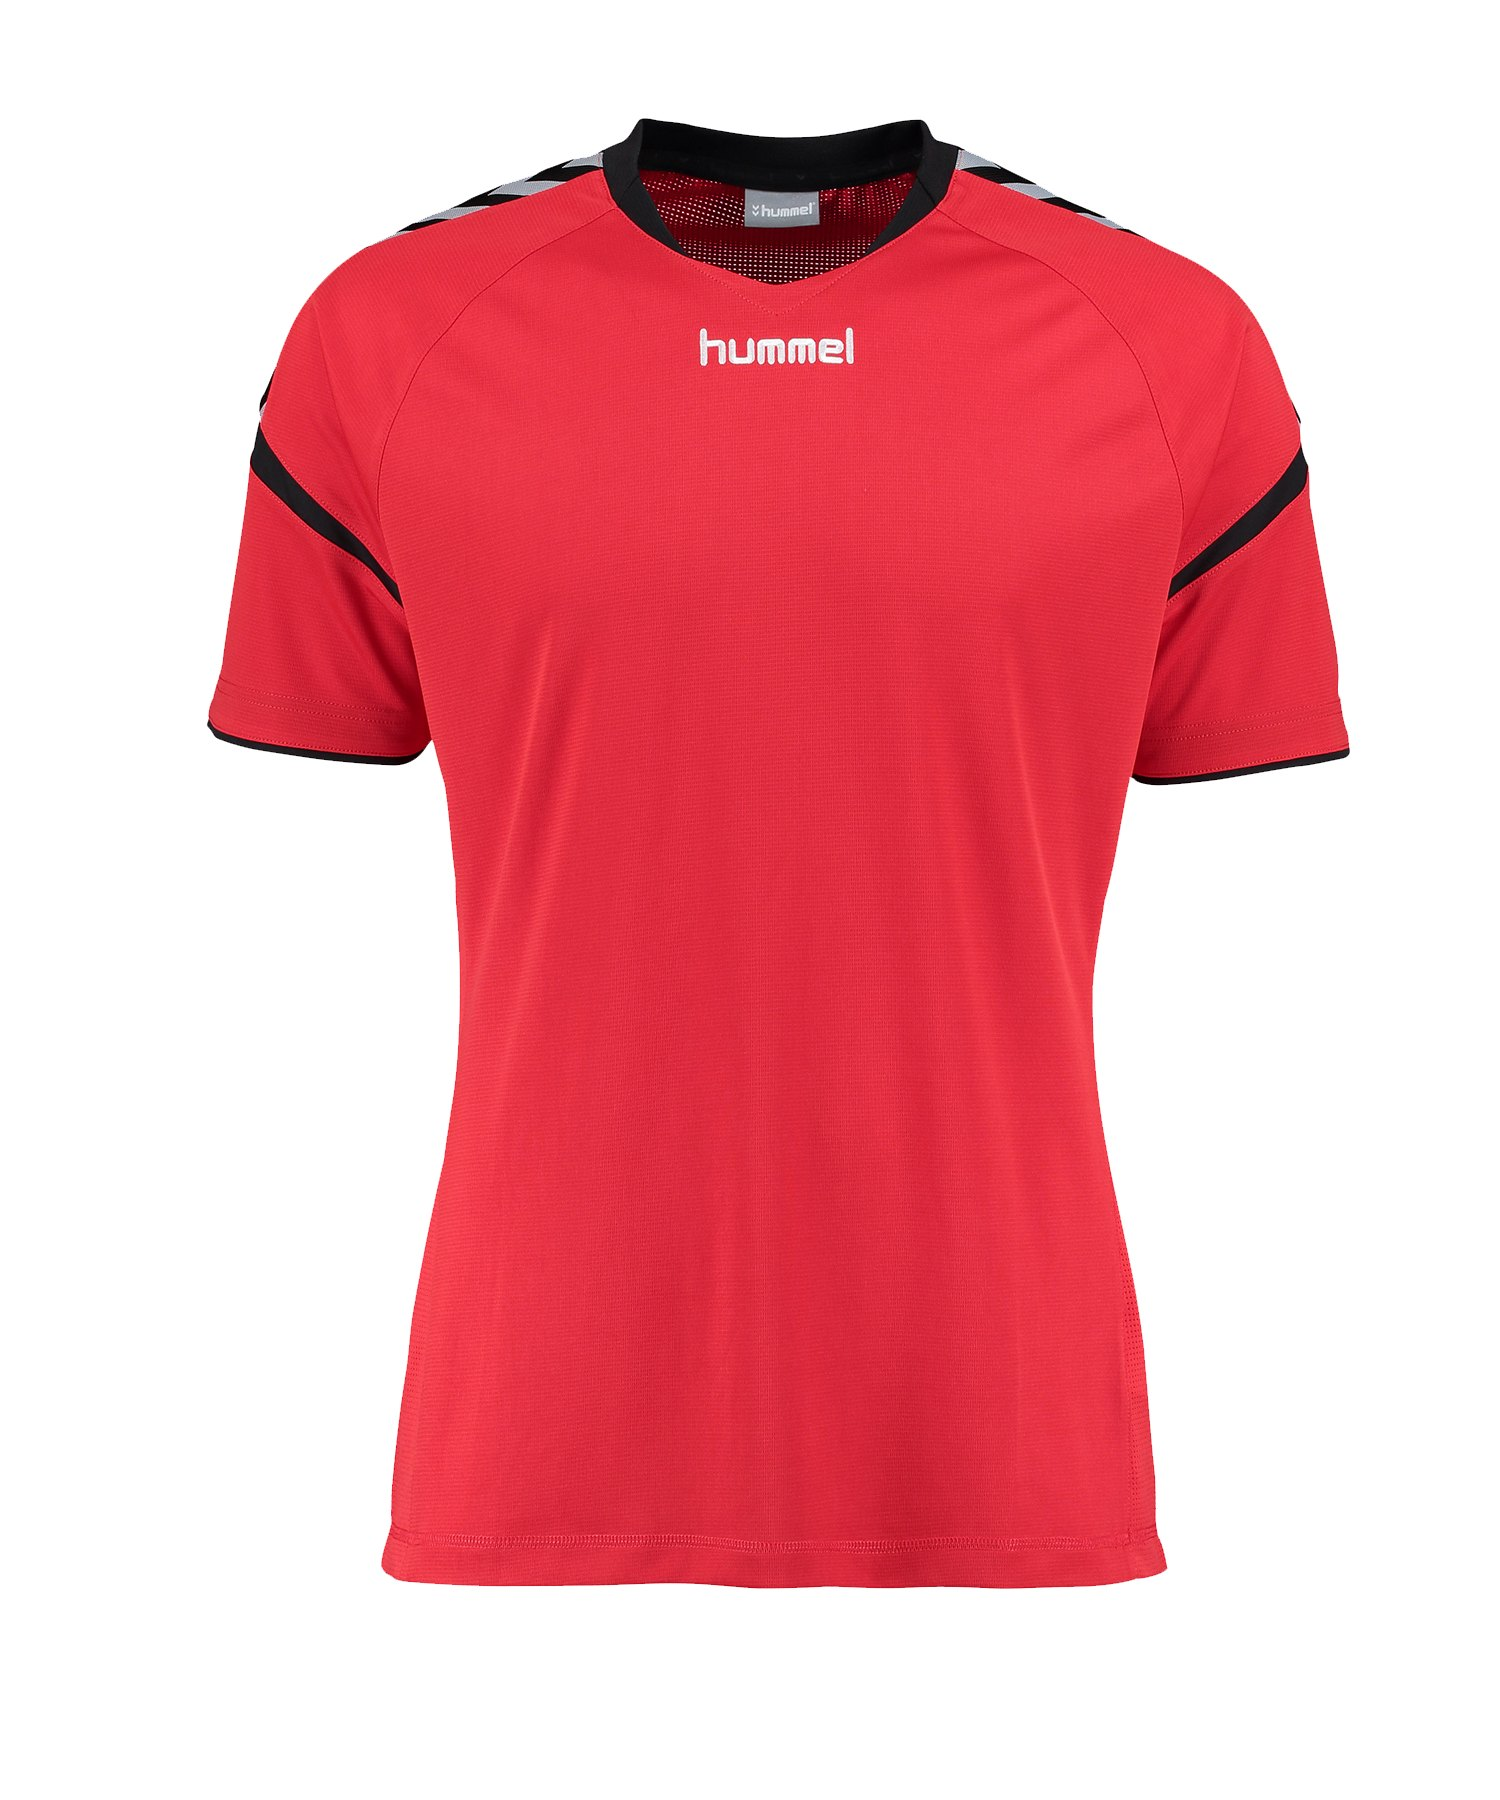 Hummel Trikot Authentic Charge SS Rot F3062 - rot